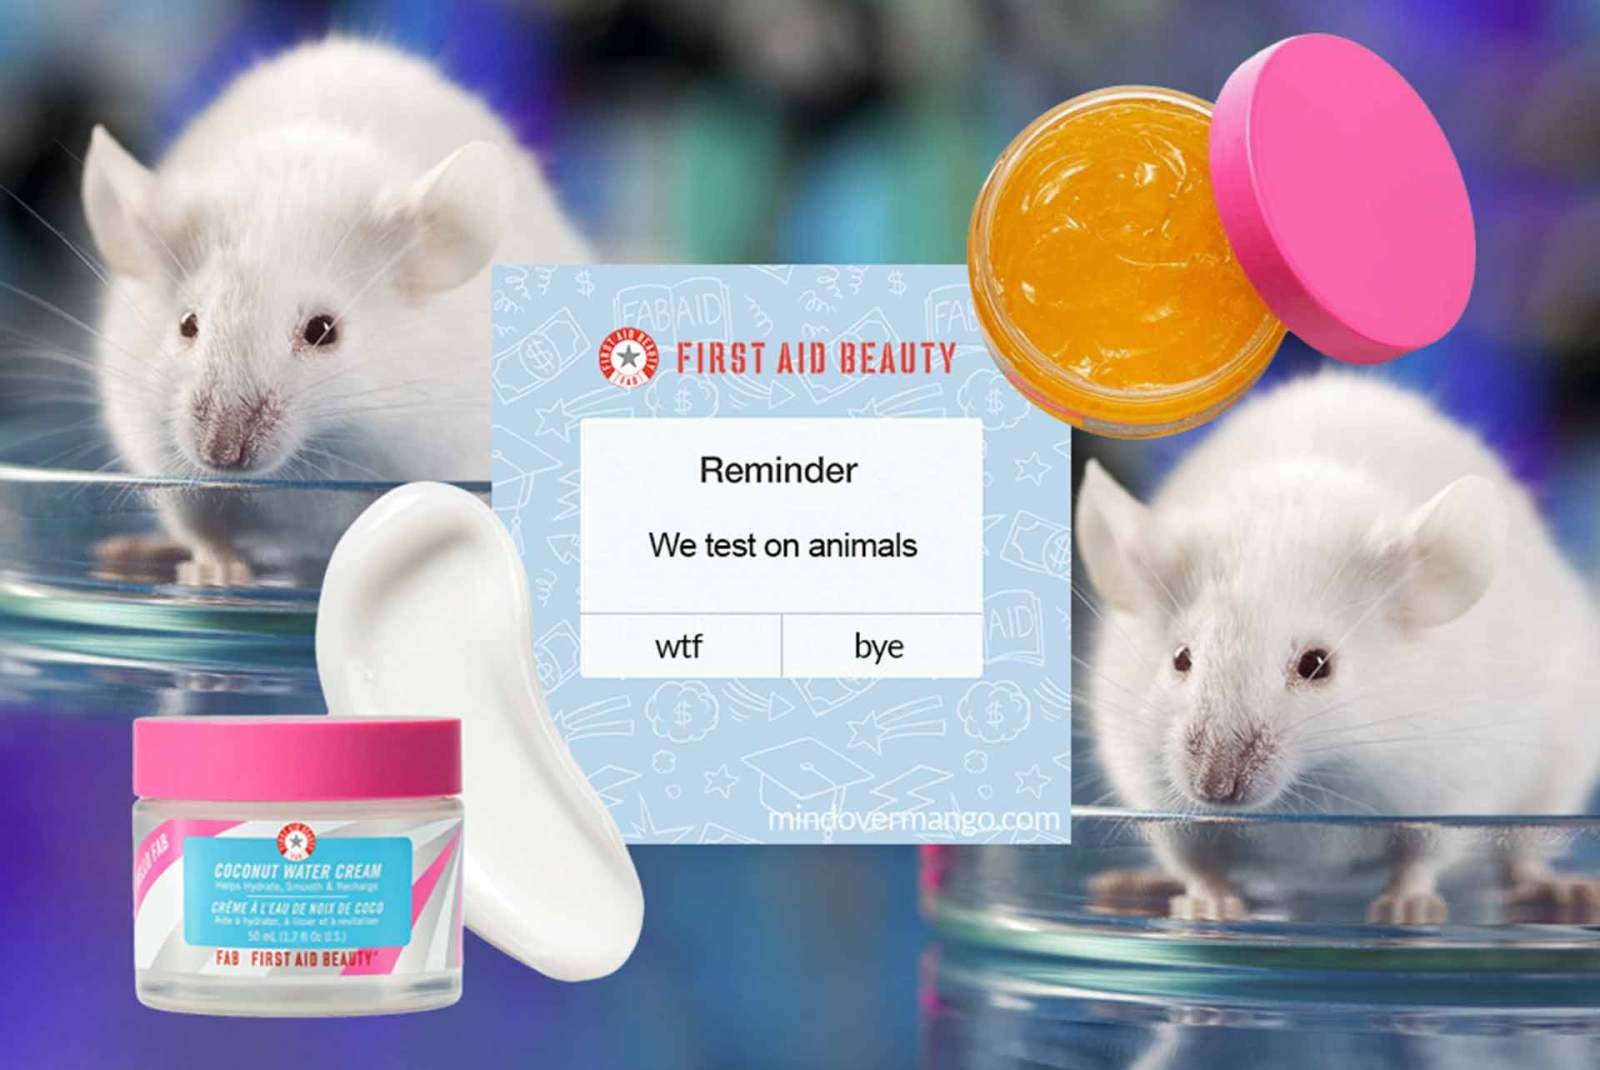 First Aid Beauty is NOT Cruelty-Free